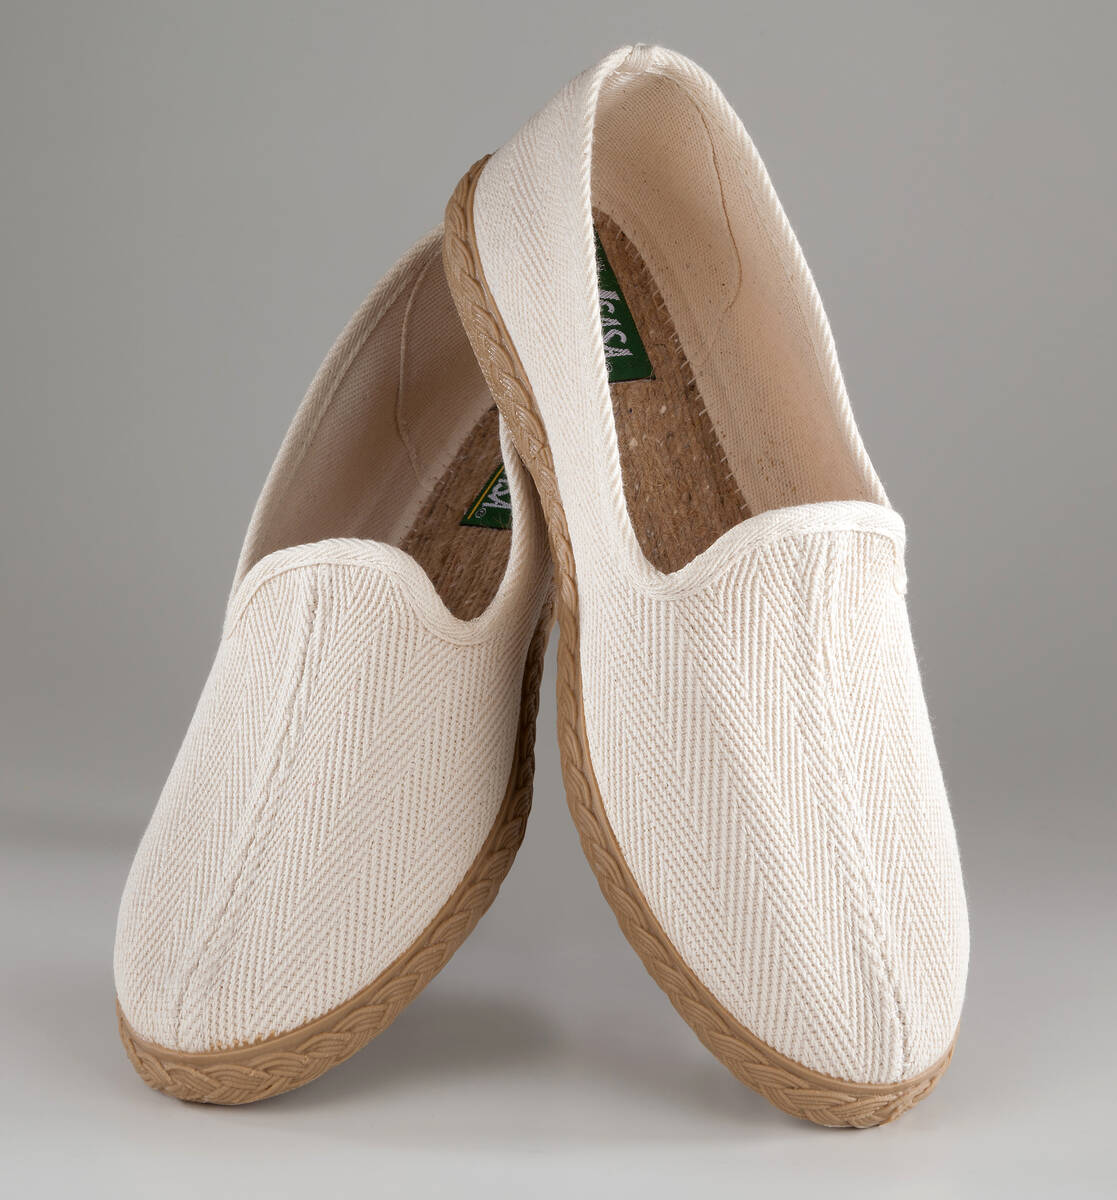 slip on shoes made of canvas beige in various sizes uk